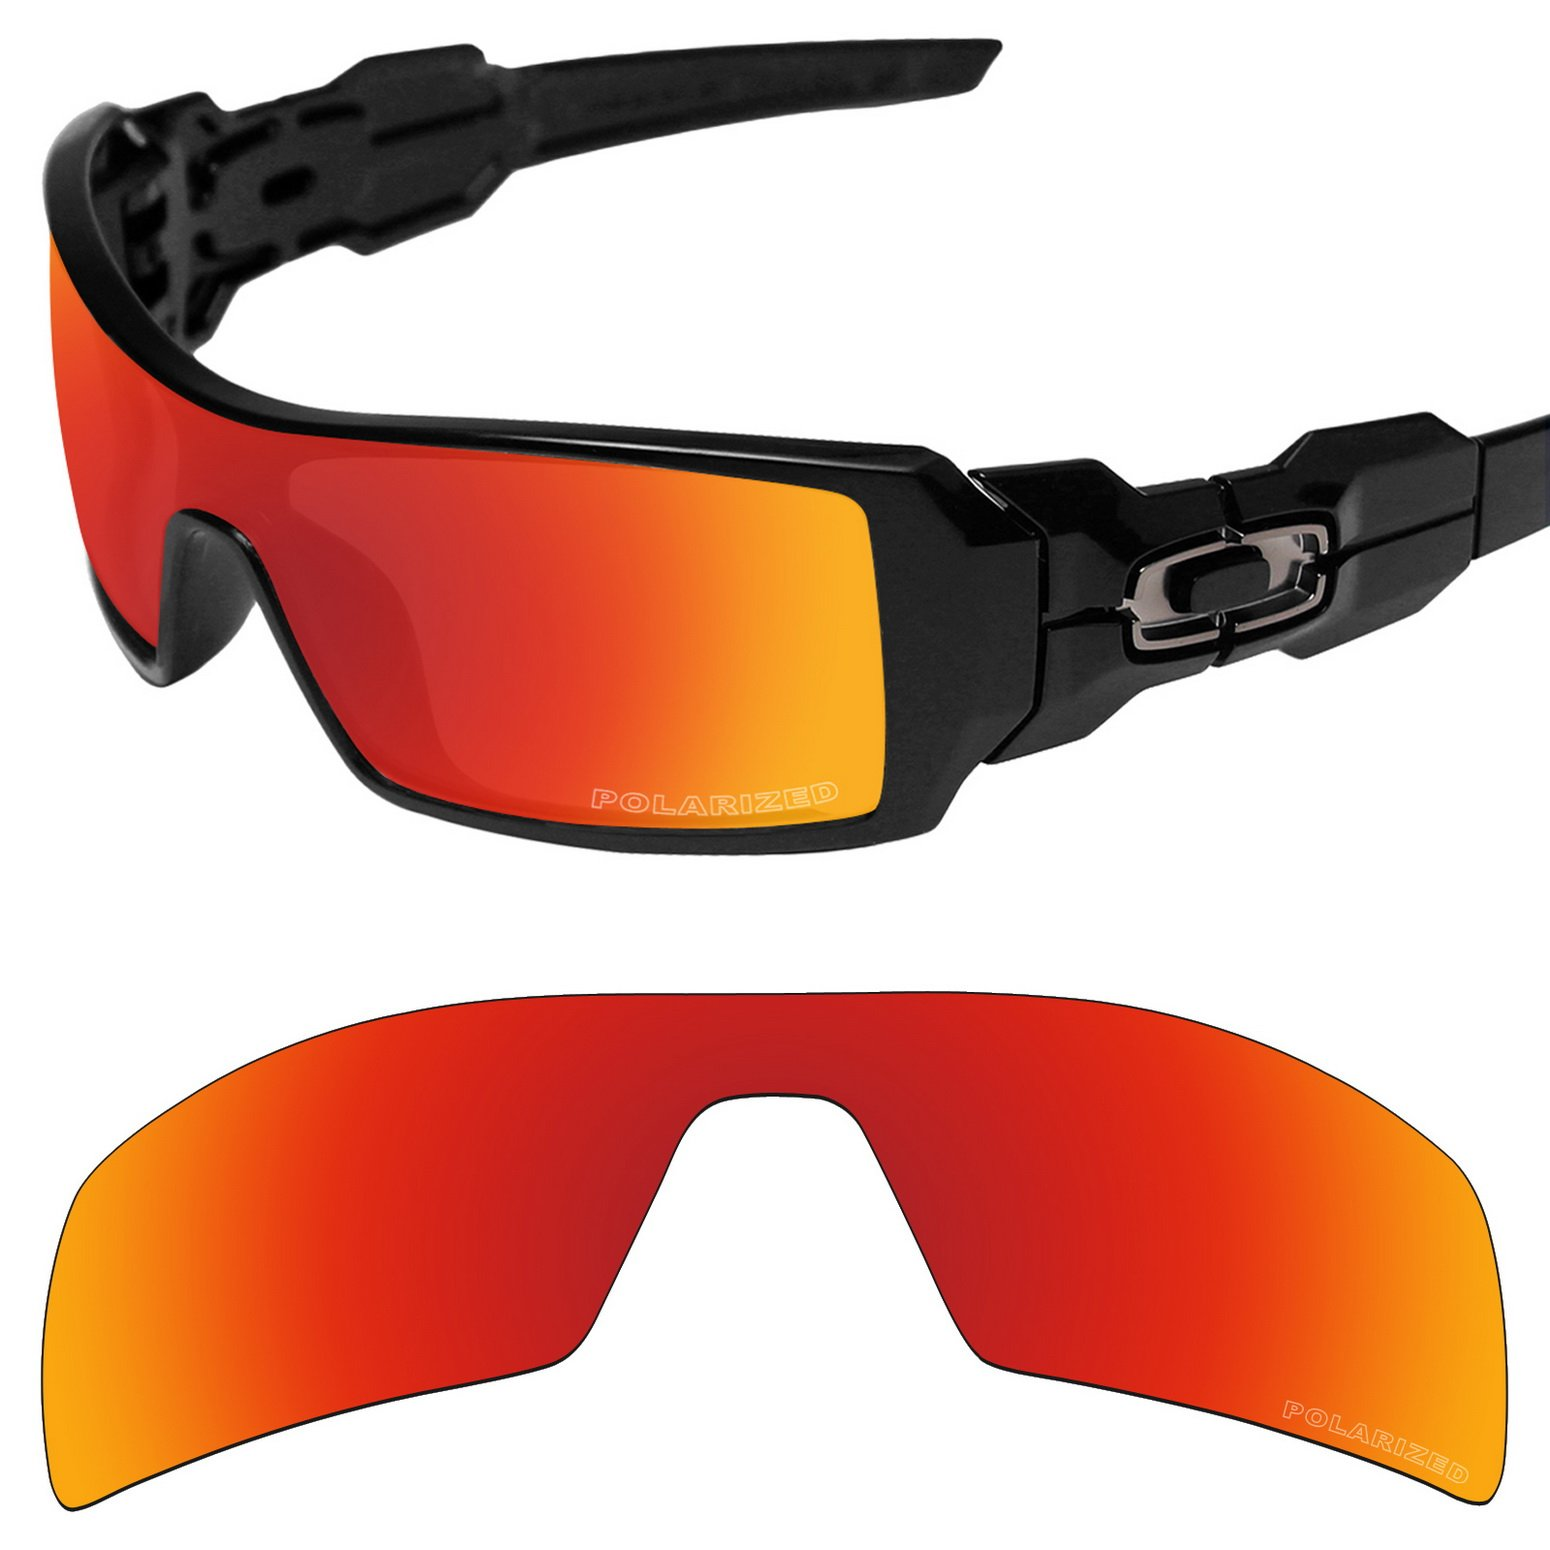 Tintart Performance Replacement Lenses for Oakley Oil Rig Sunglass Polarized Etched-Fire Red by Tintart